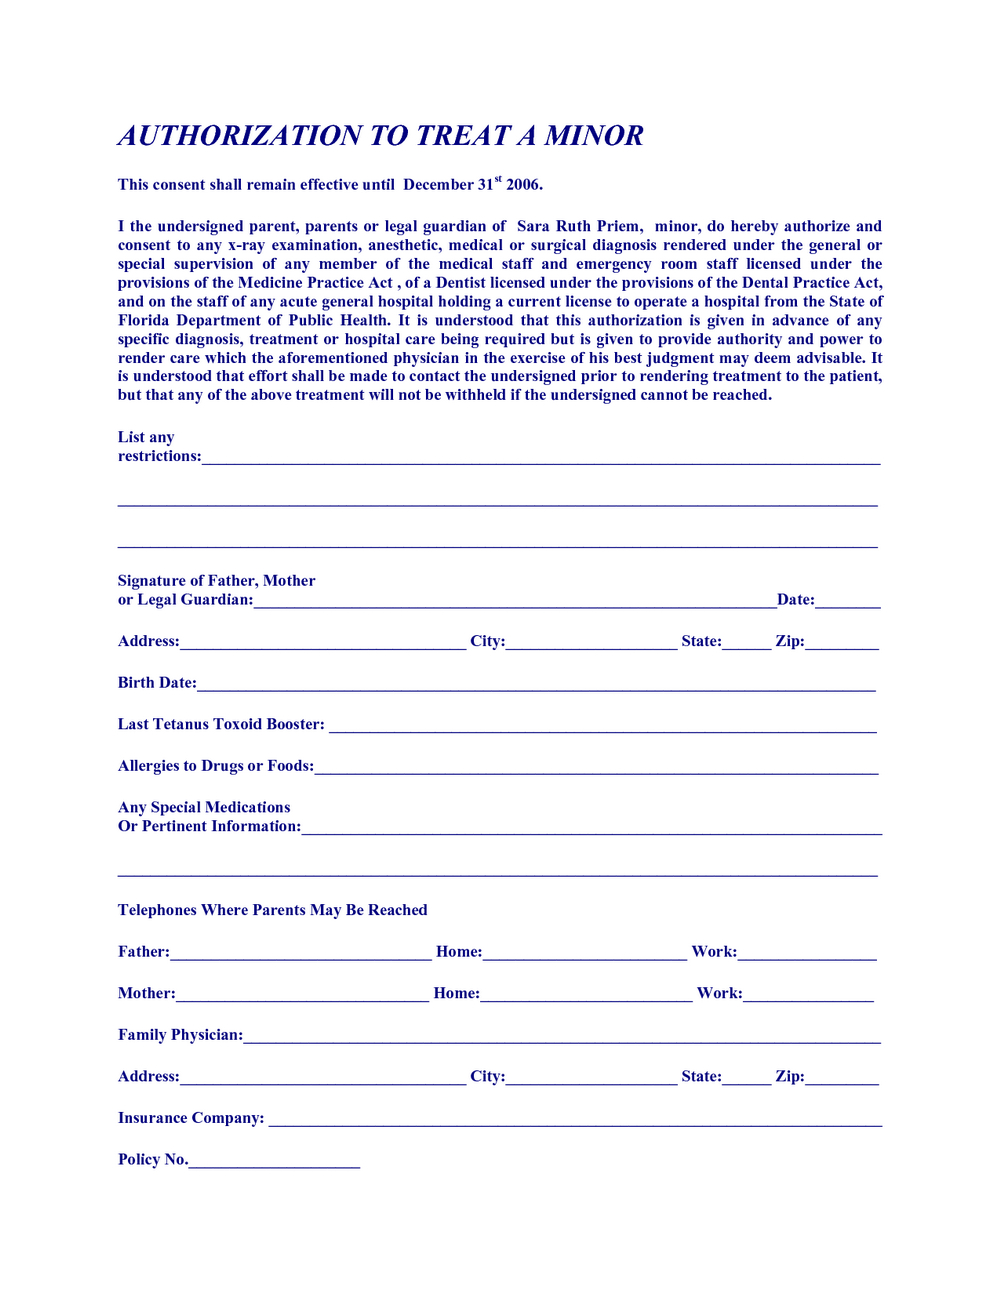 Free Printable Child Medical Consent Form For Grandparents | Mbm Legal - Free Printable Child Medical Consent Form